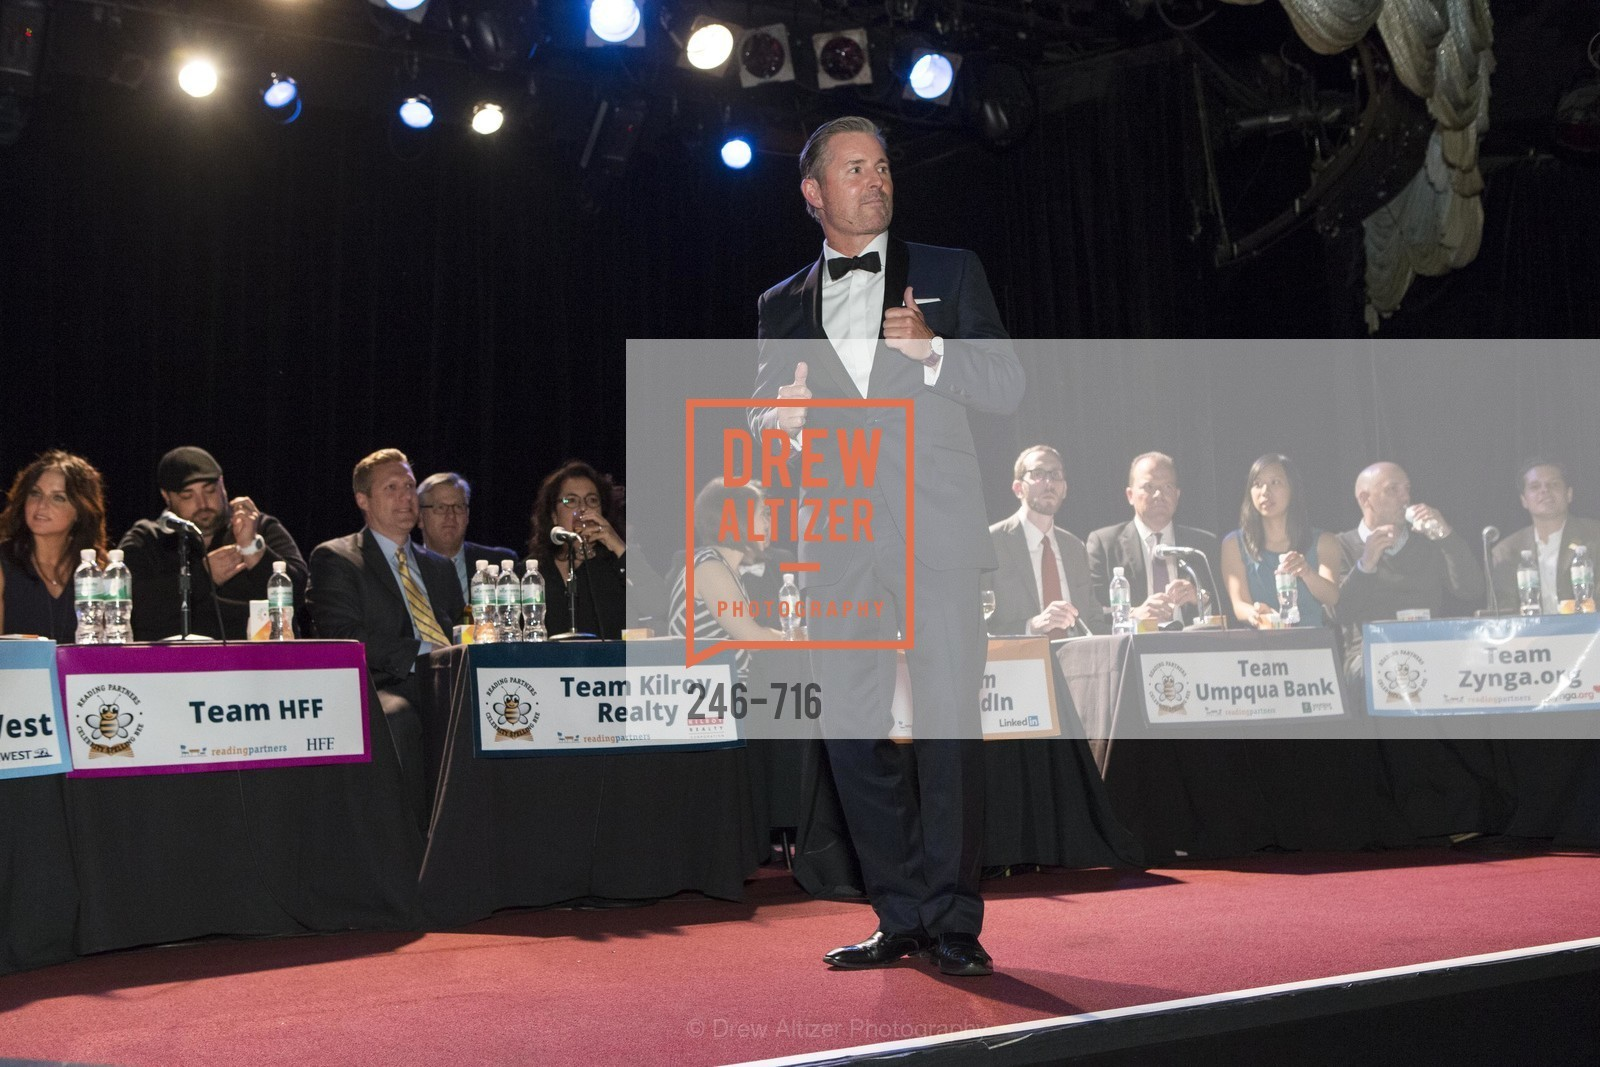 Doug Landis, READING PARTNERS BAY AREA Celebrity Spelling Bee, US, May 9th, 2015,Drew Altizer, Drew Altizer Photography, full-service agency, private events, San Francisco photographer, photographer california